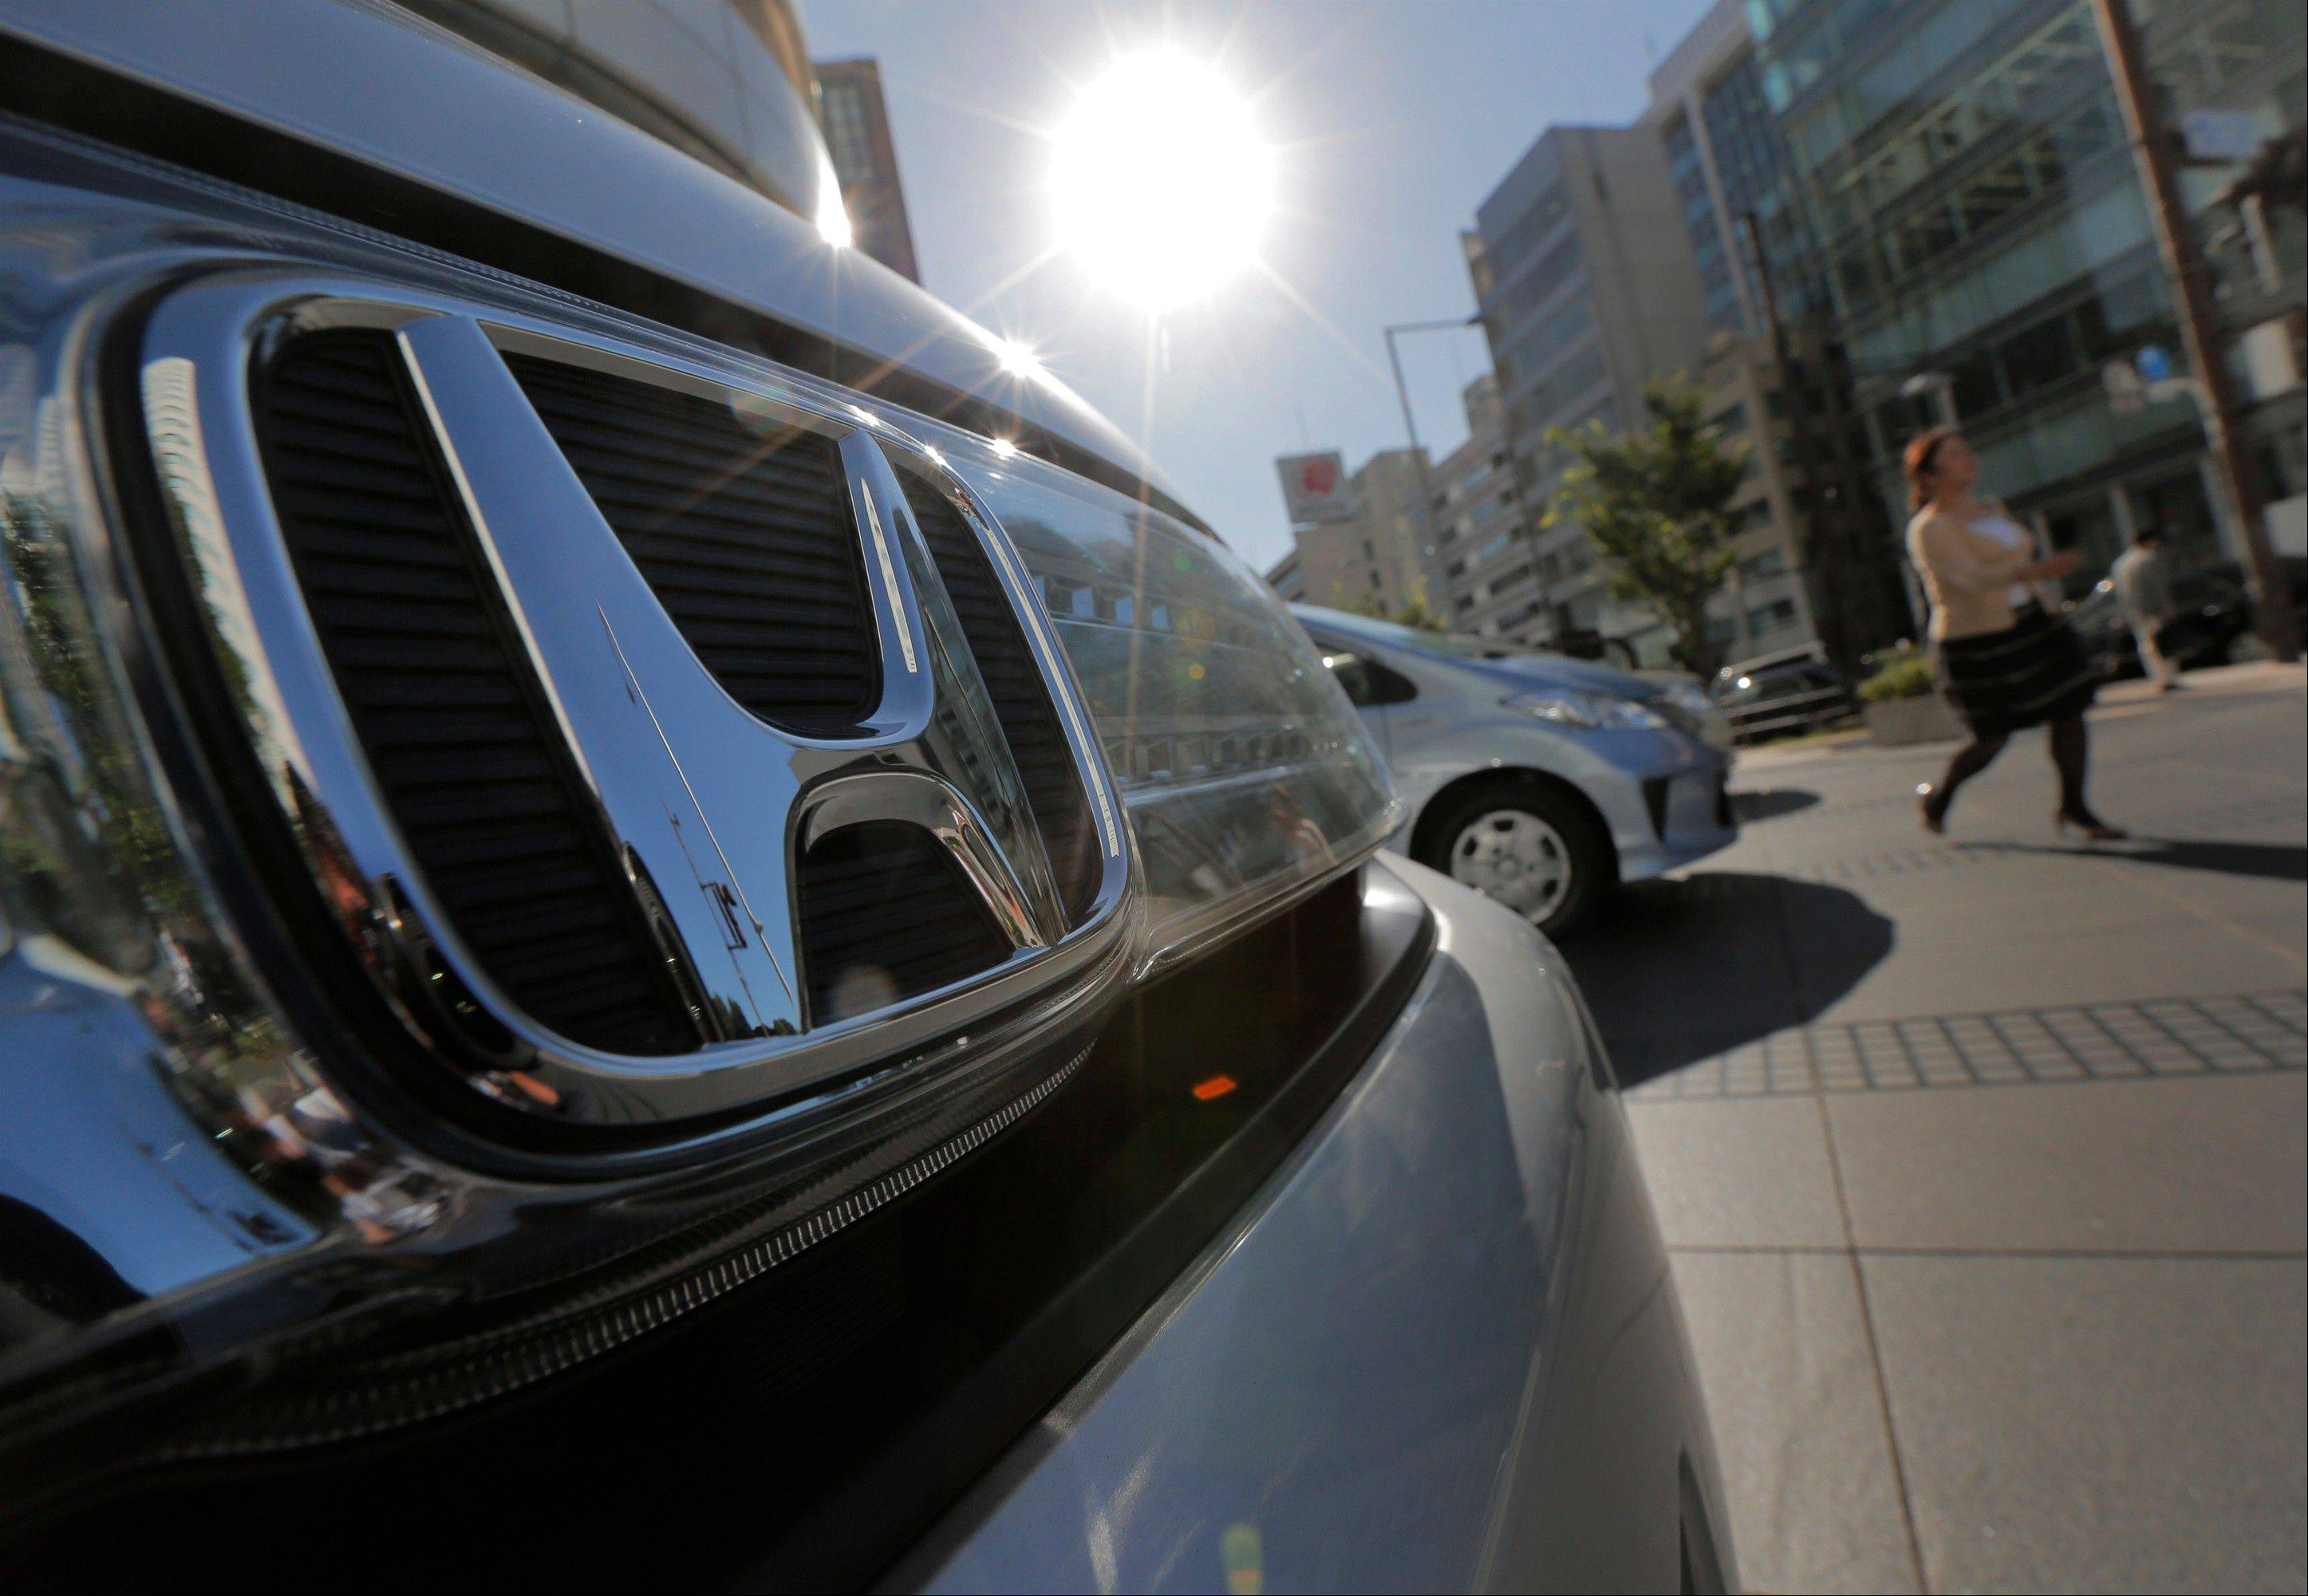 A woman walks by Honda Motor Co.'s vehicles on display in front of the Japanese automaker's headquarters in Tokyo Tuesday.